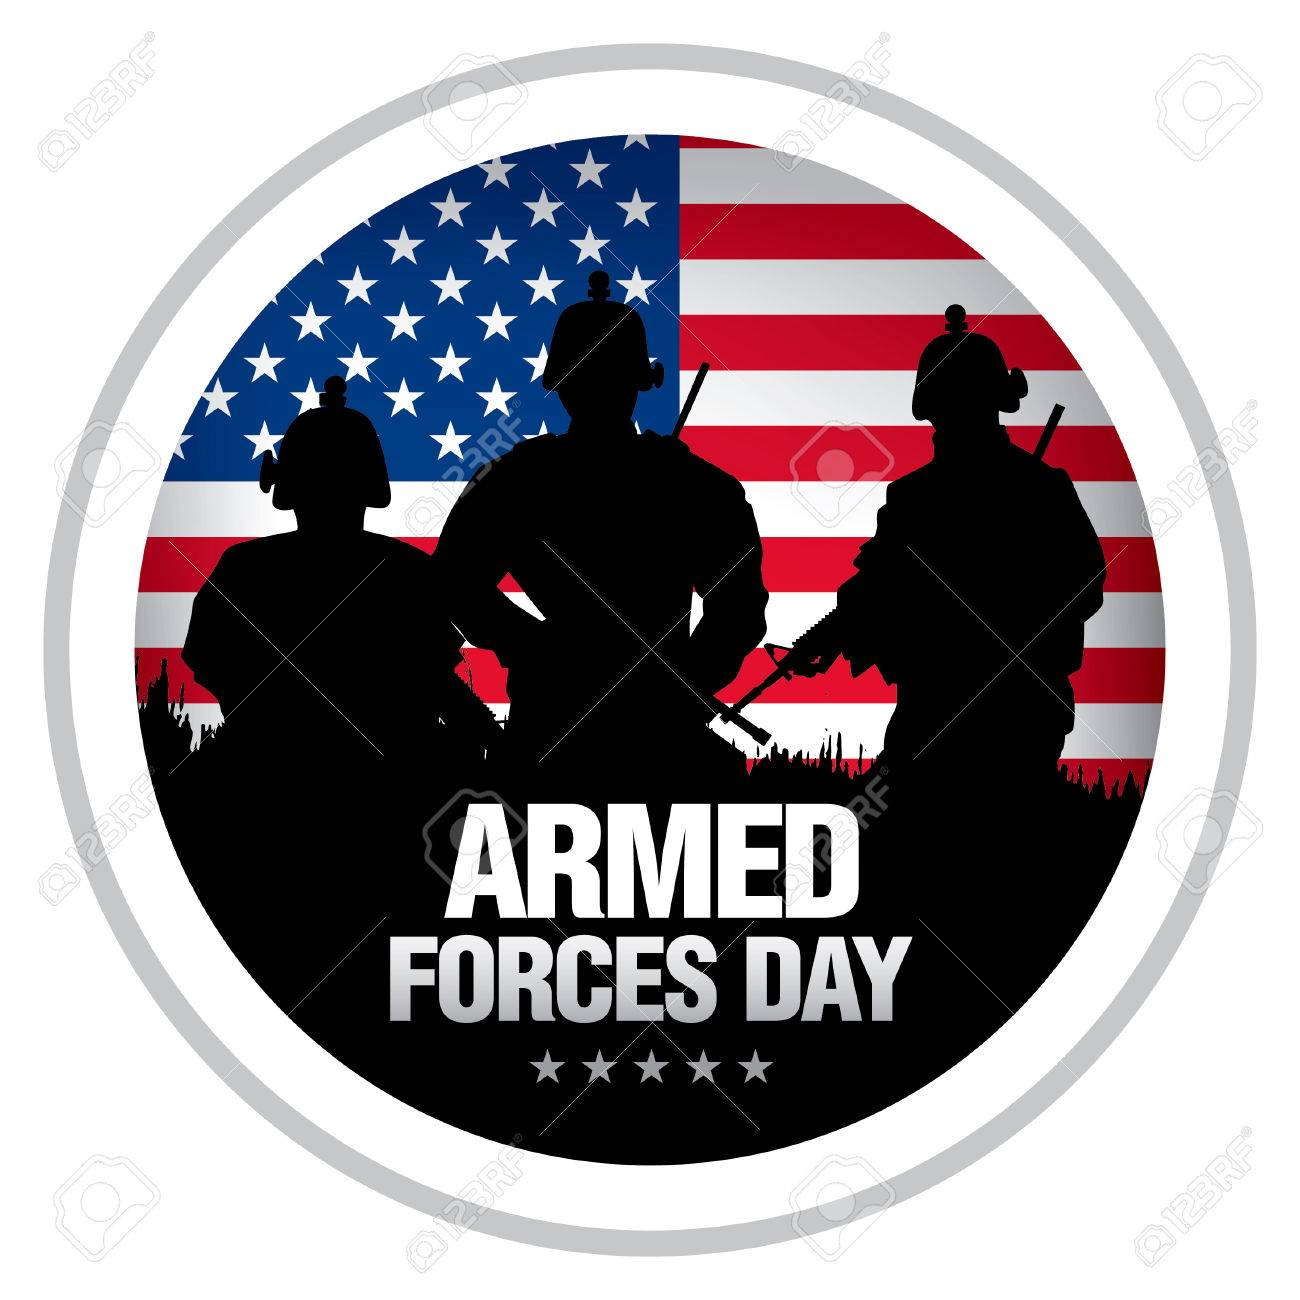 Armed forces day template badge.